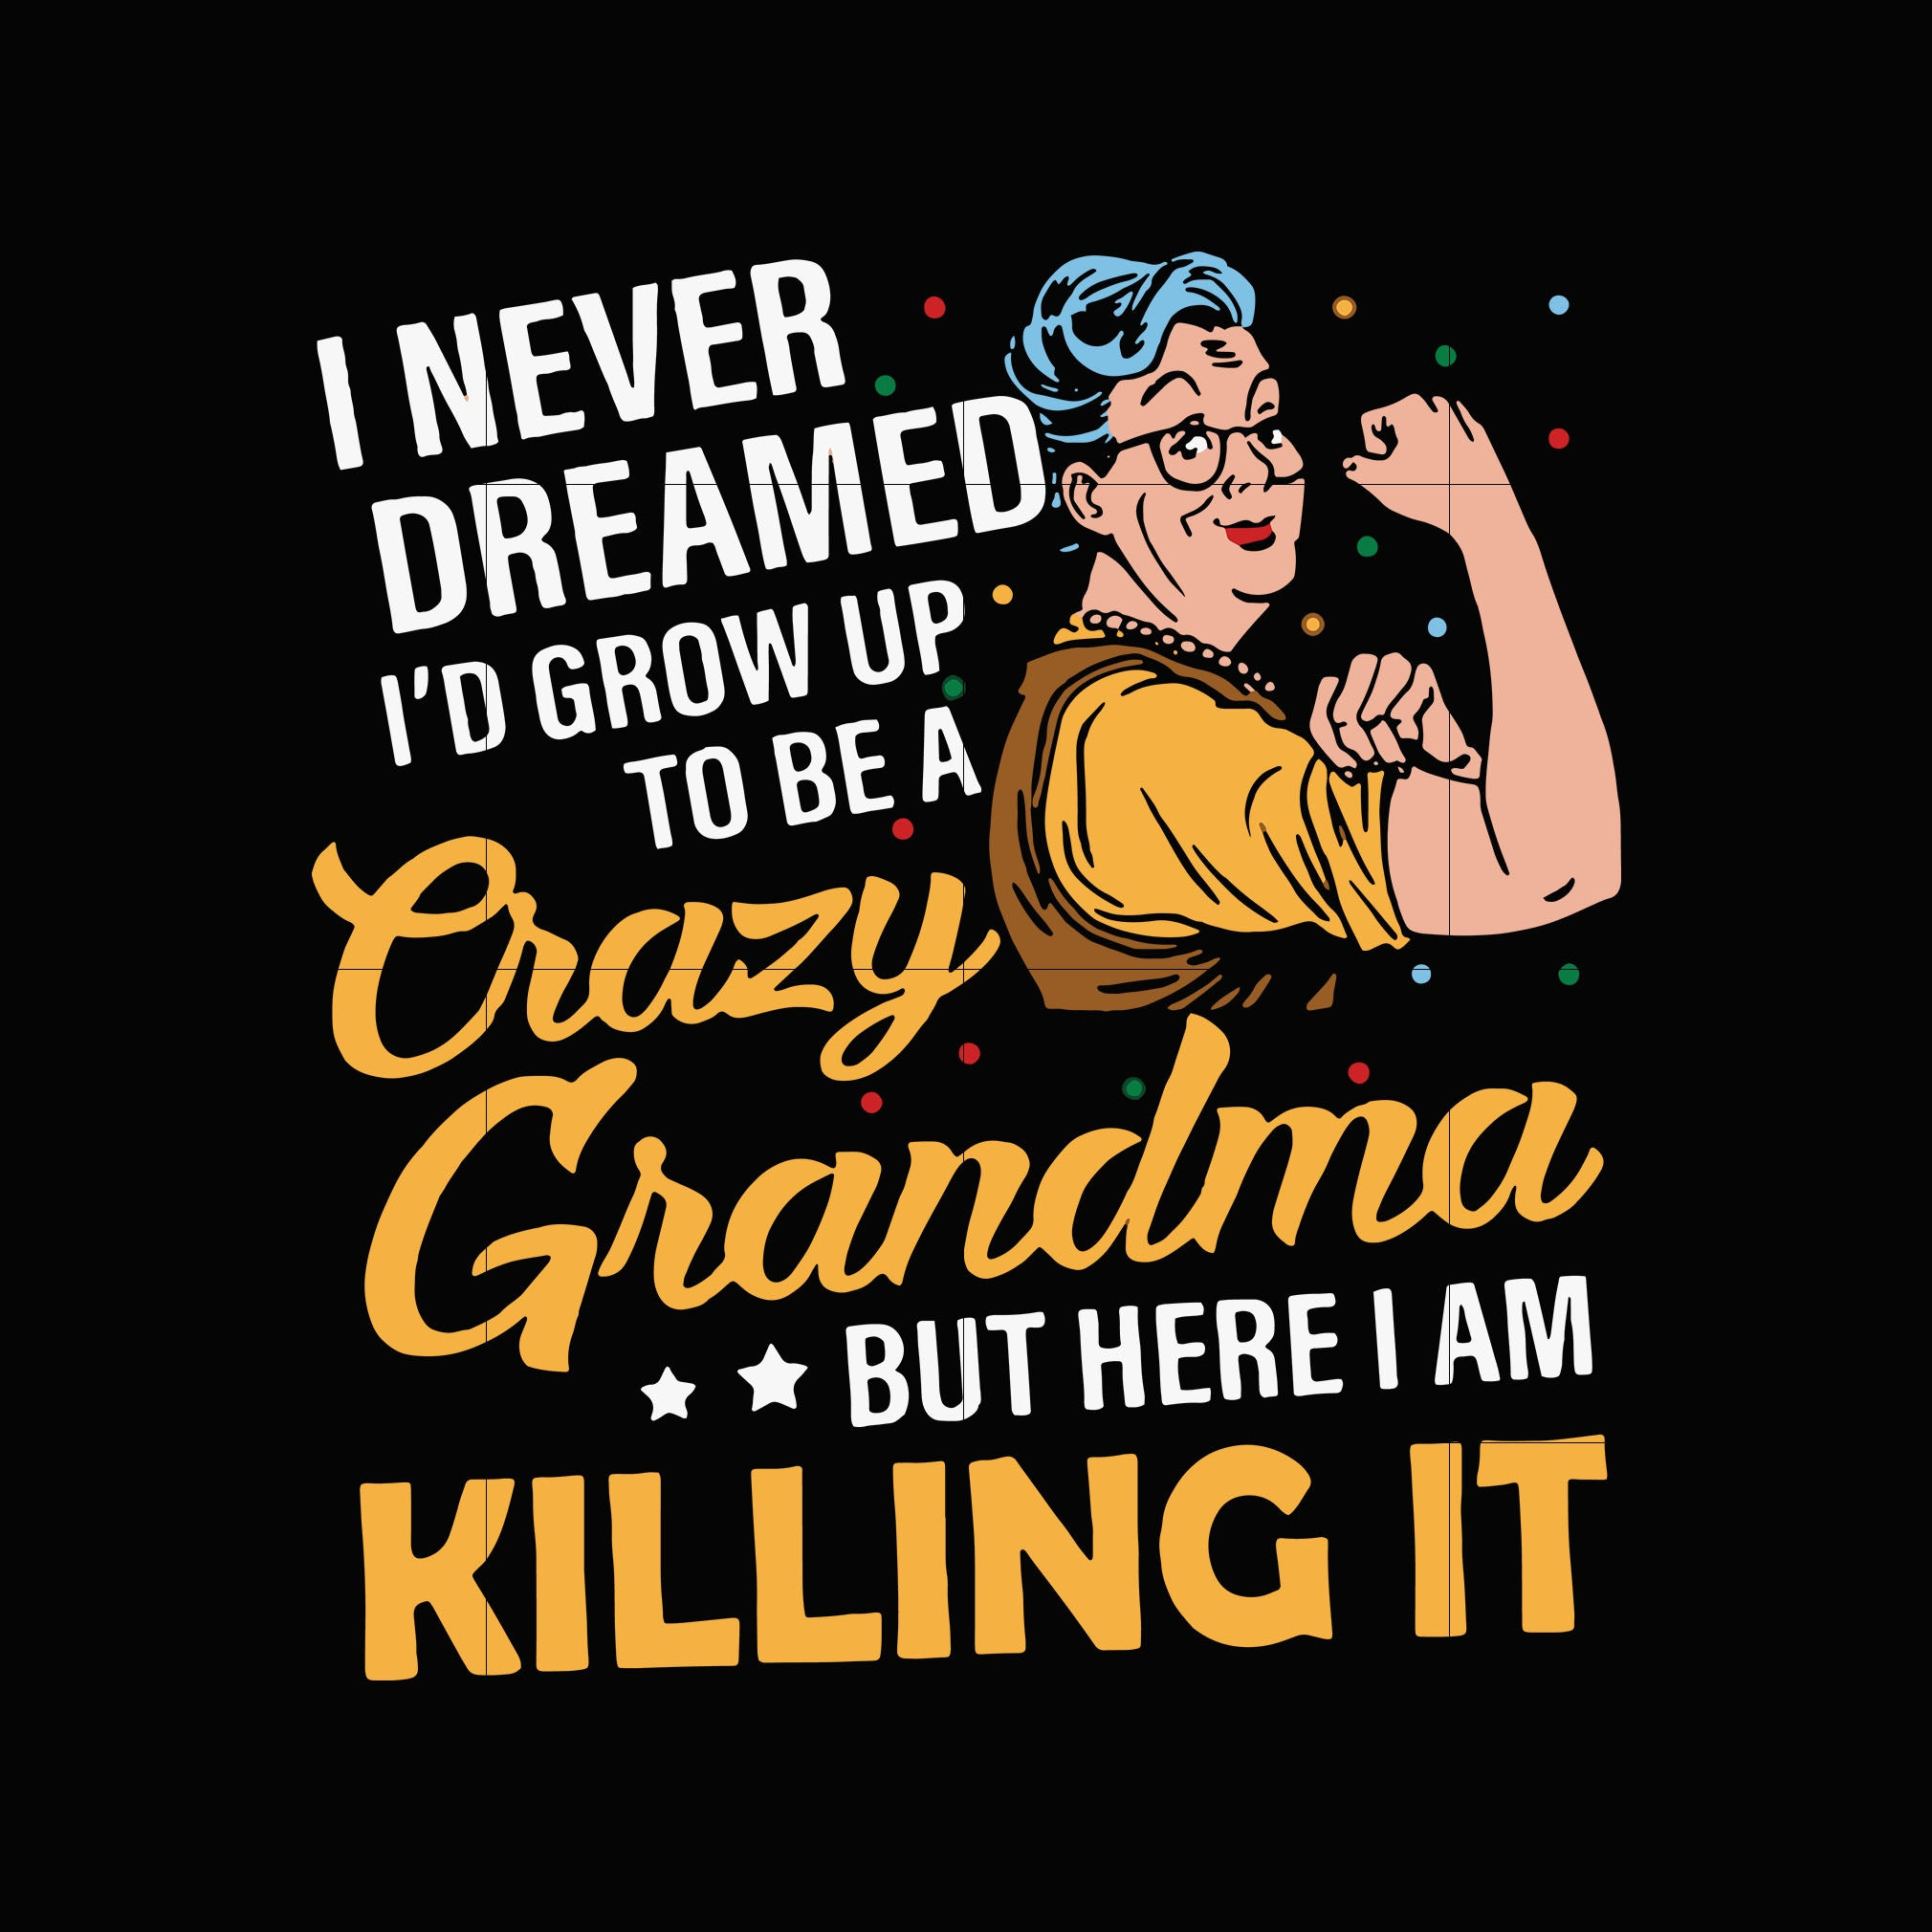 I never dreamed I'd grow up to be a crazy grandma but here i am killing it svg,dxf,eps,png digital file